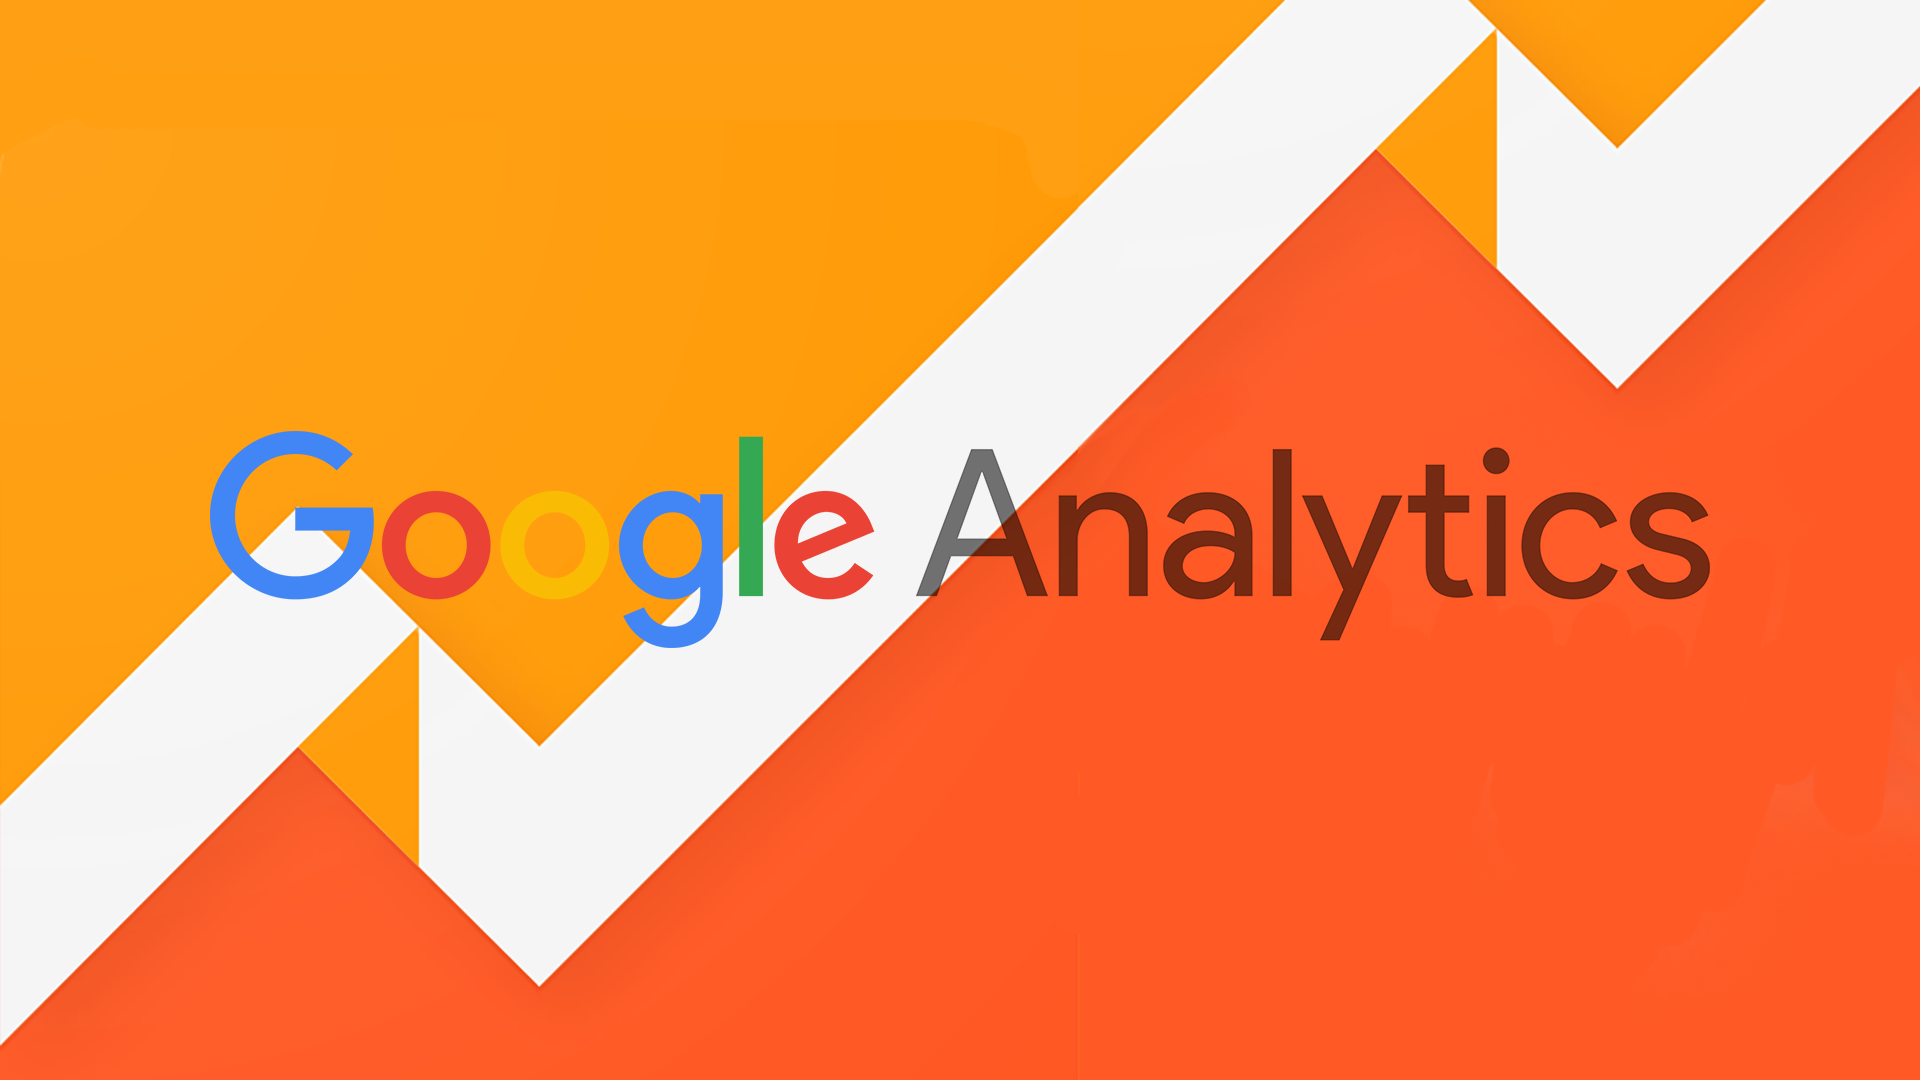 6 Types Of Statistics To Research On Google Analytics To Analyze Affiliate Marketing Campaigns